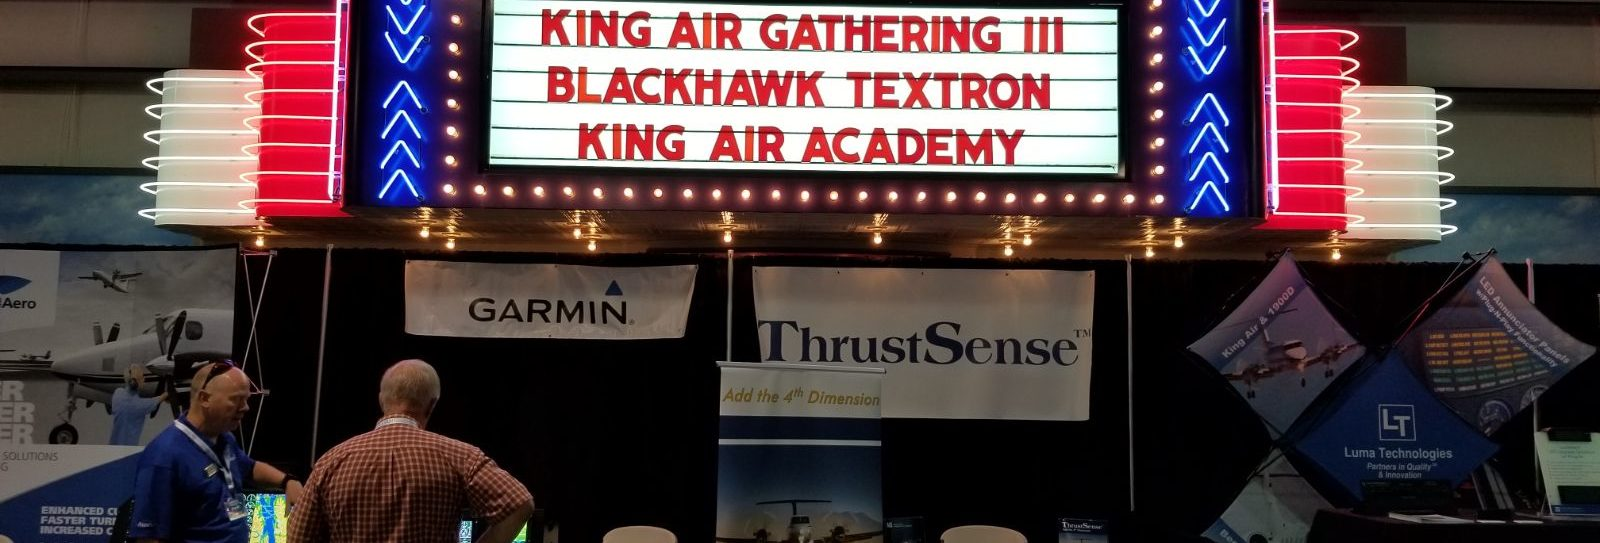 PWI showcased our LED lighting products at the 2018 King Air Gathering III in Fredericksburg, TX in September.